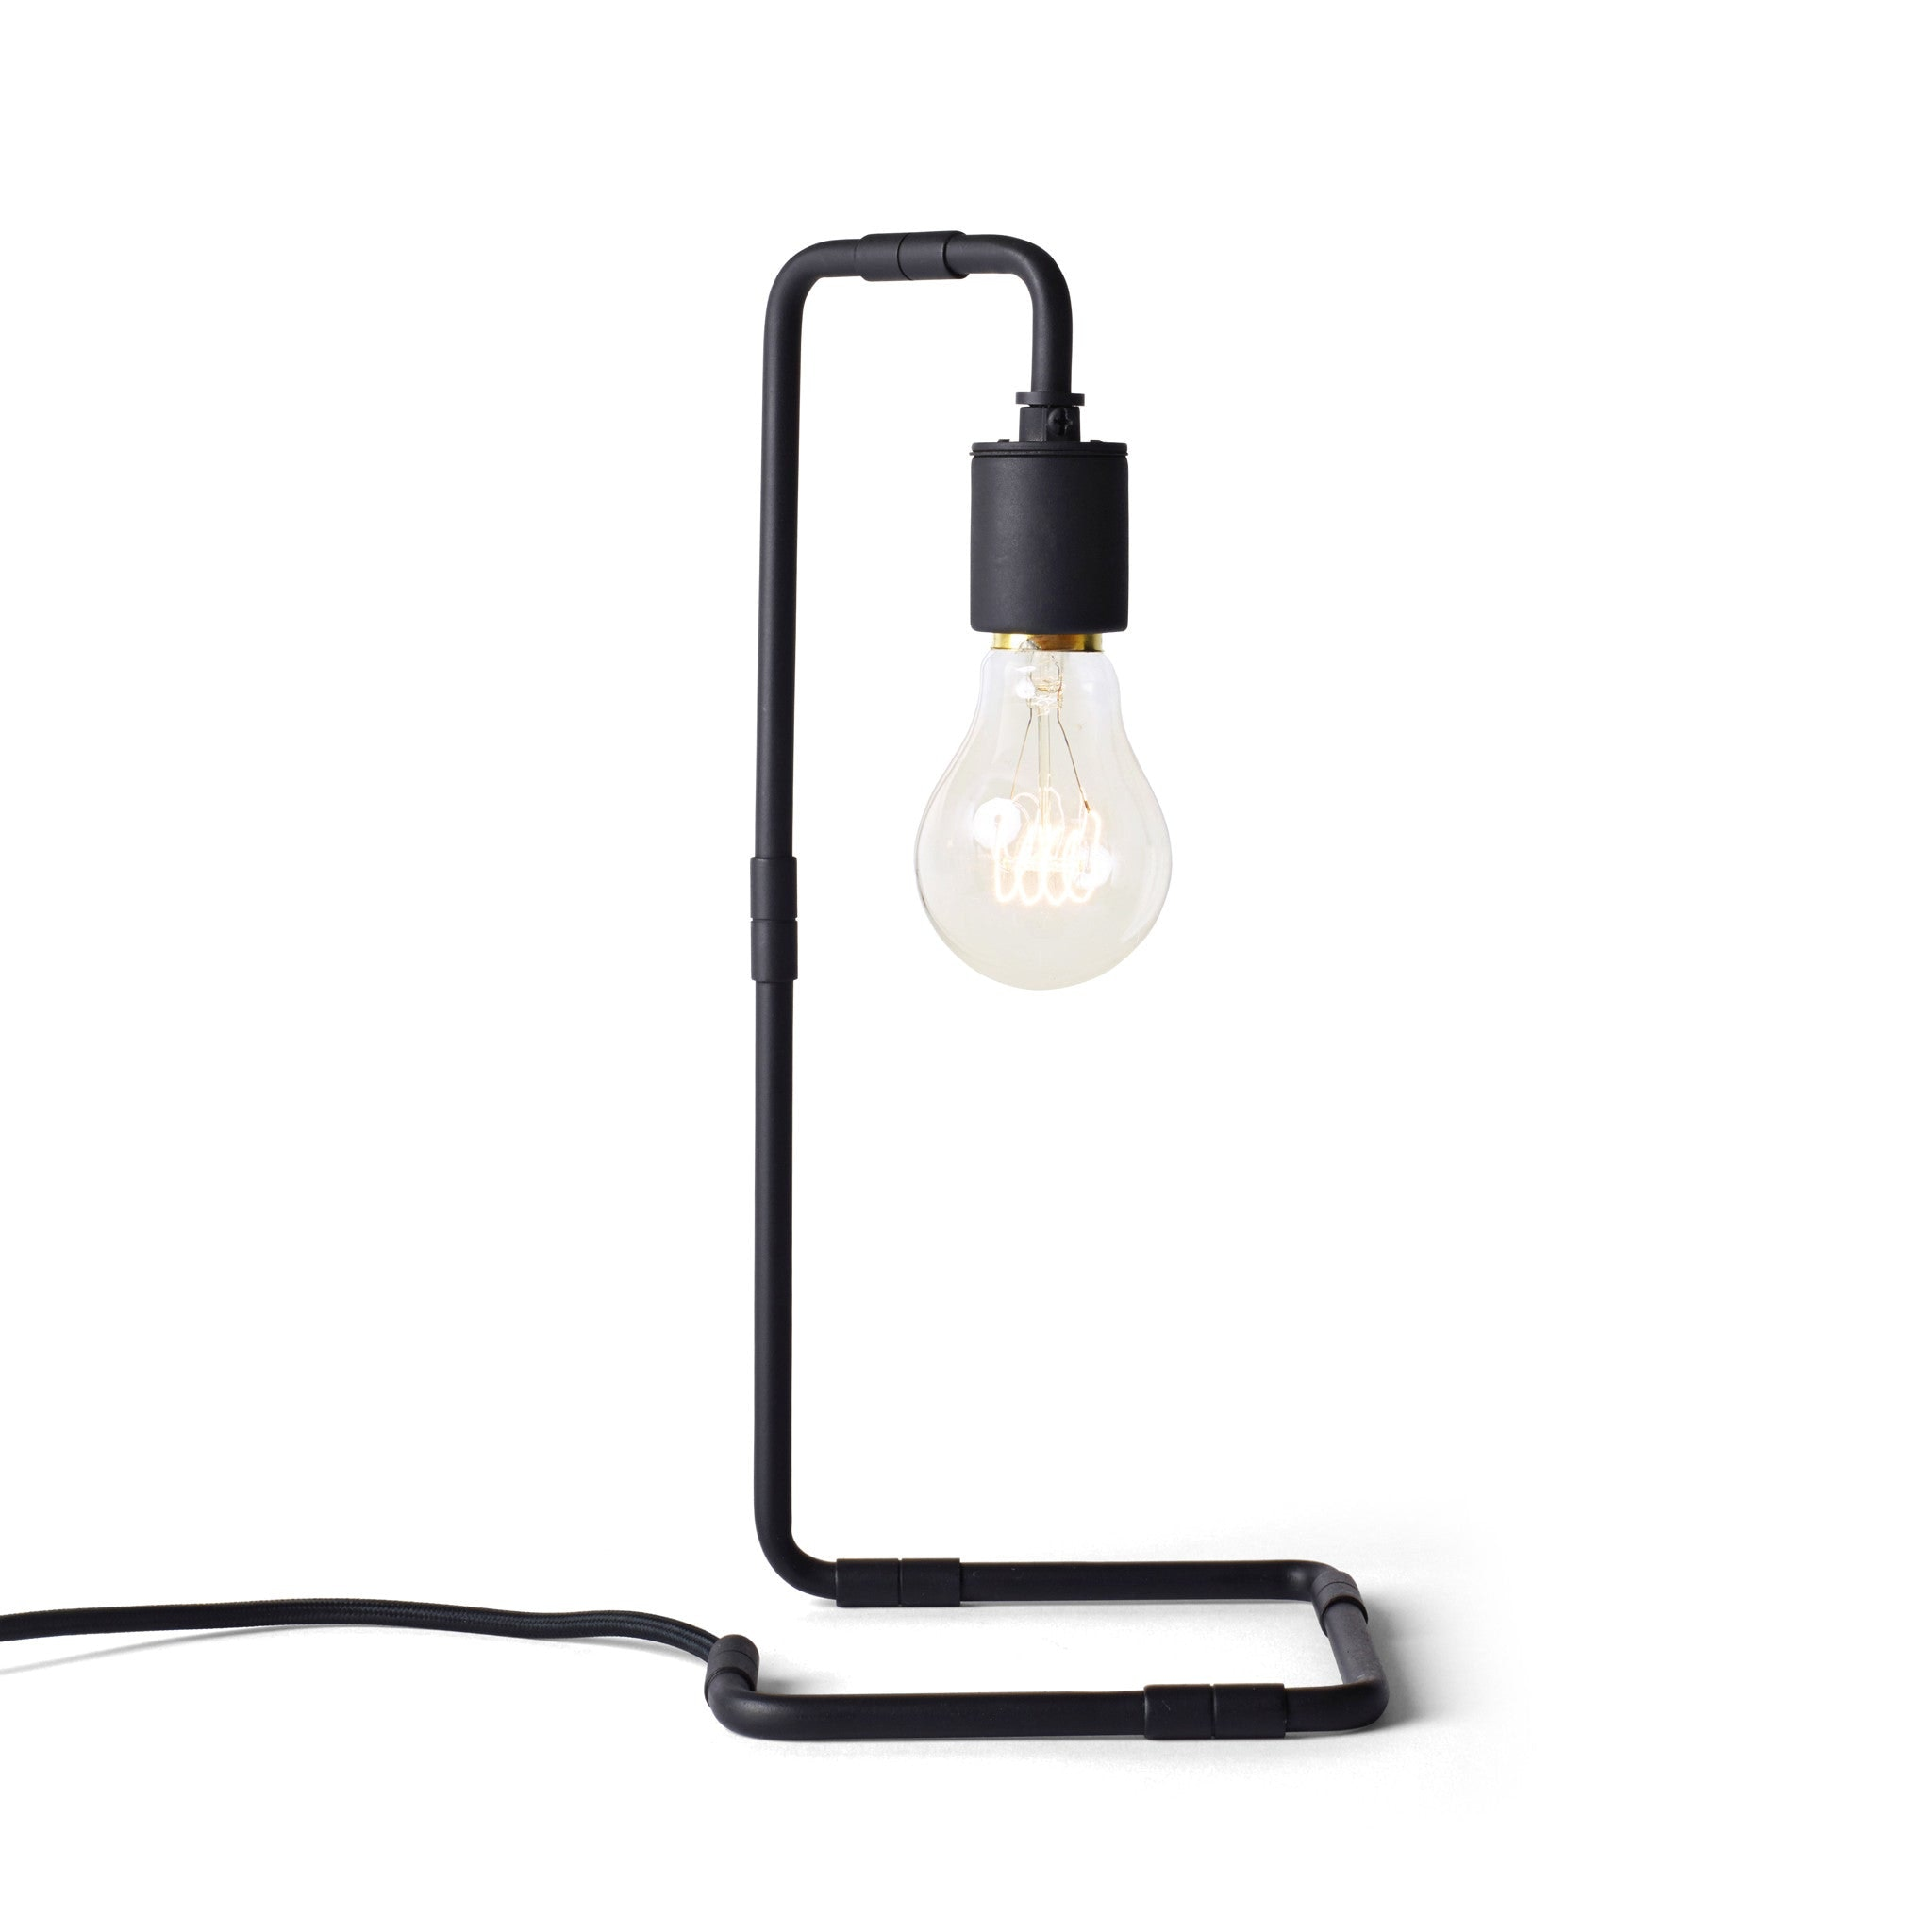 Tribeca Reade Table Lamp by Menu